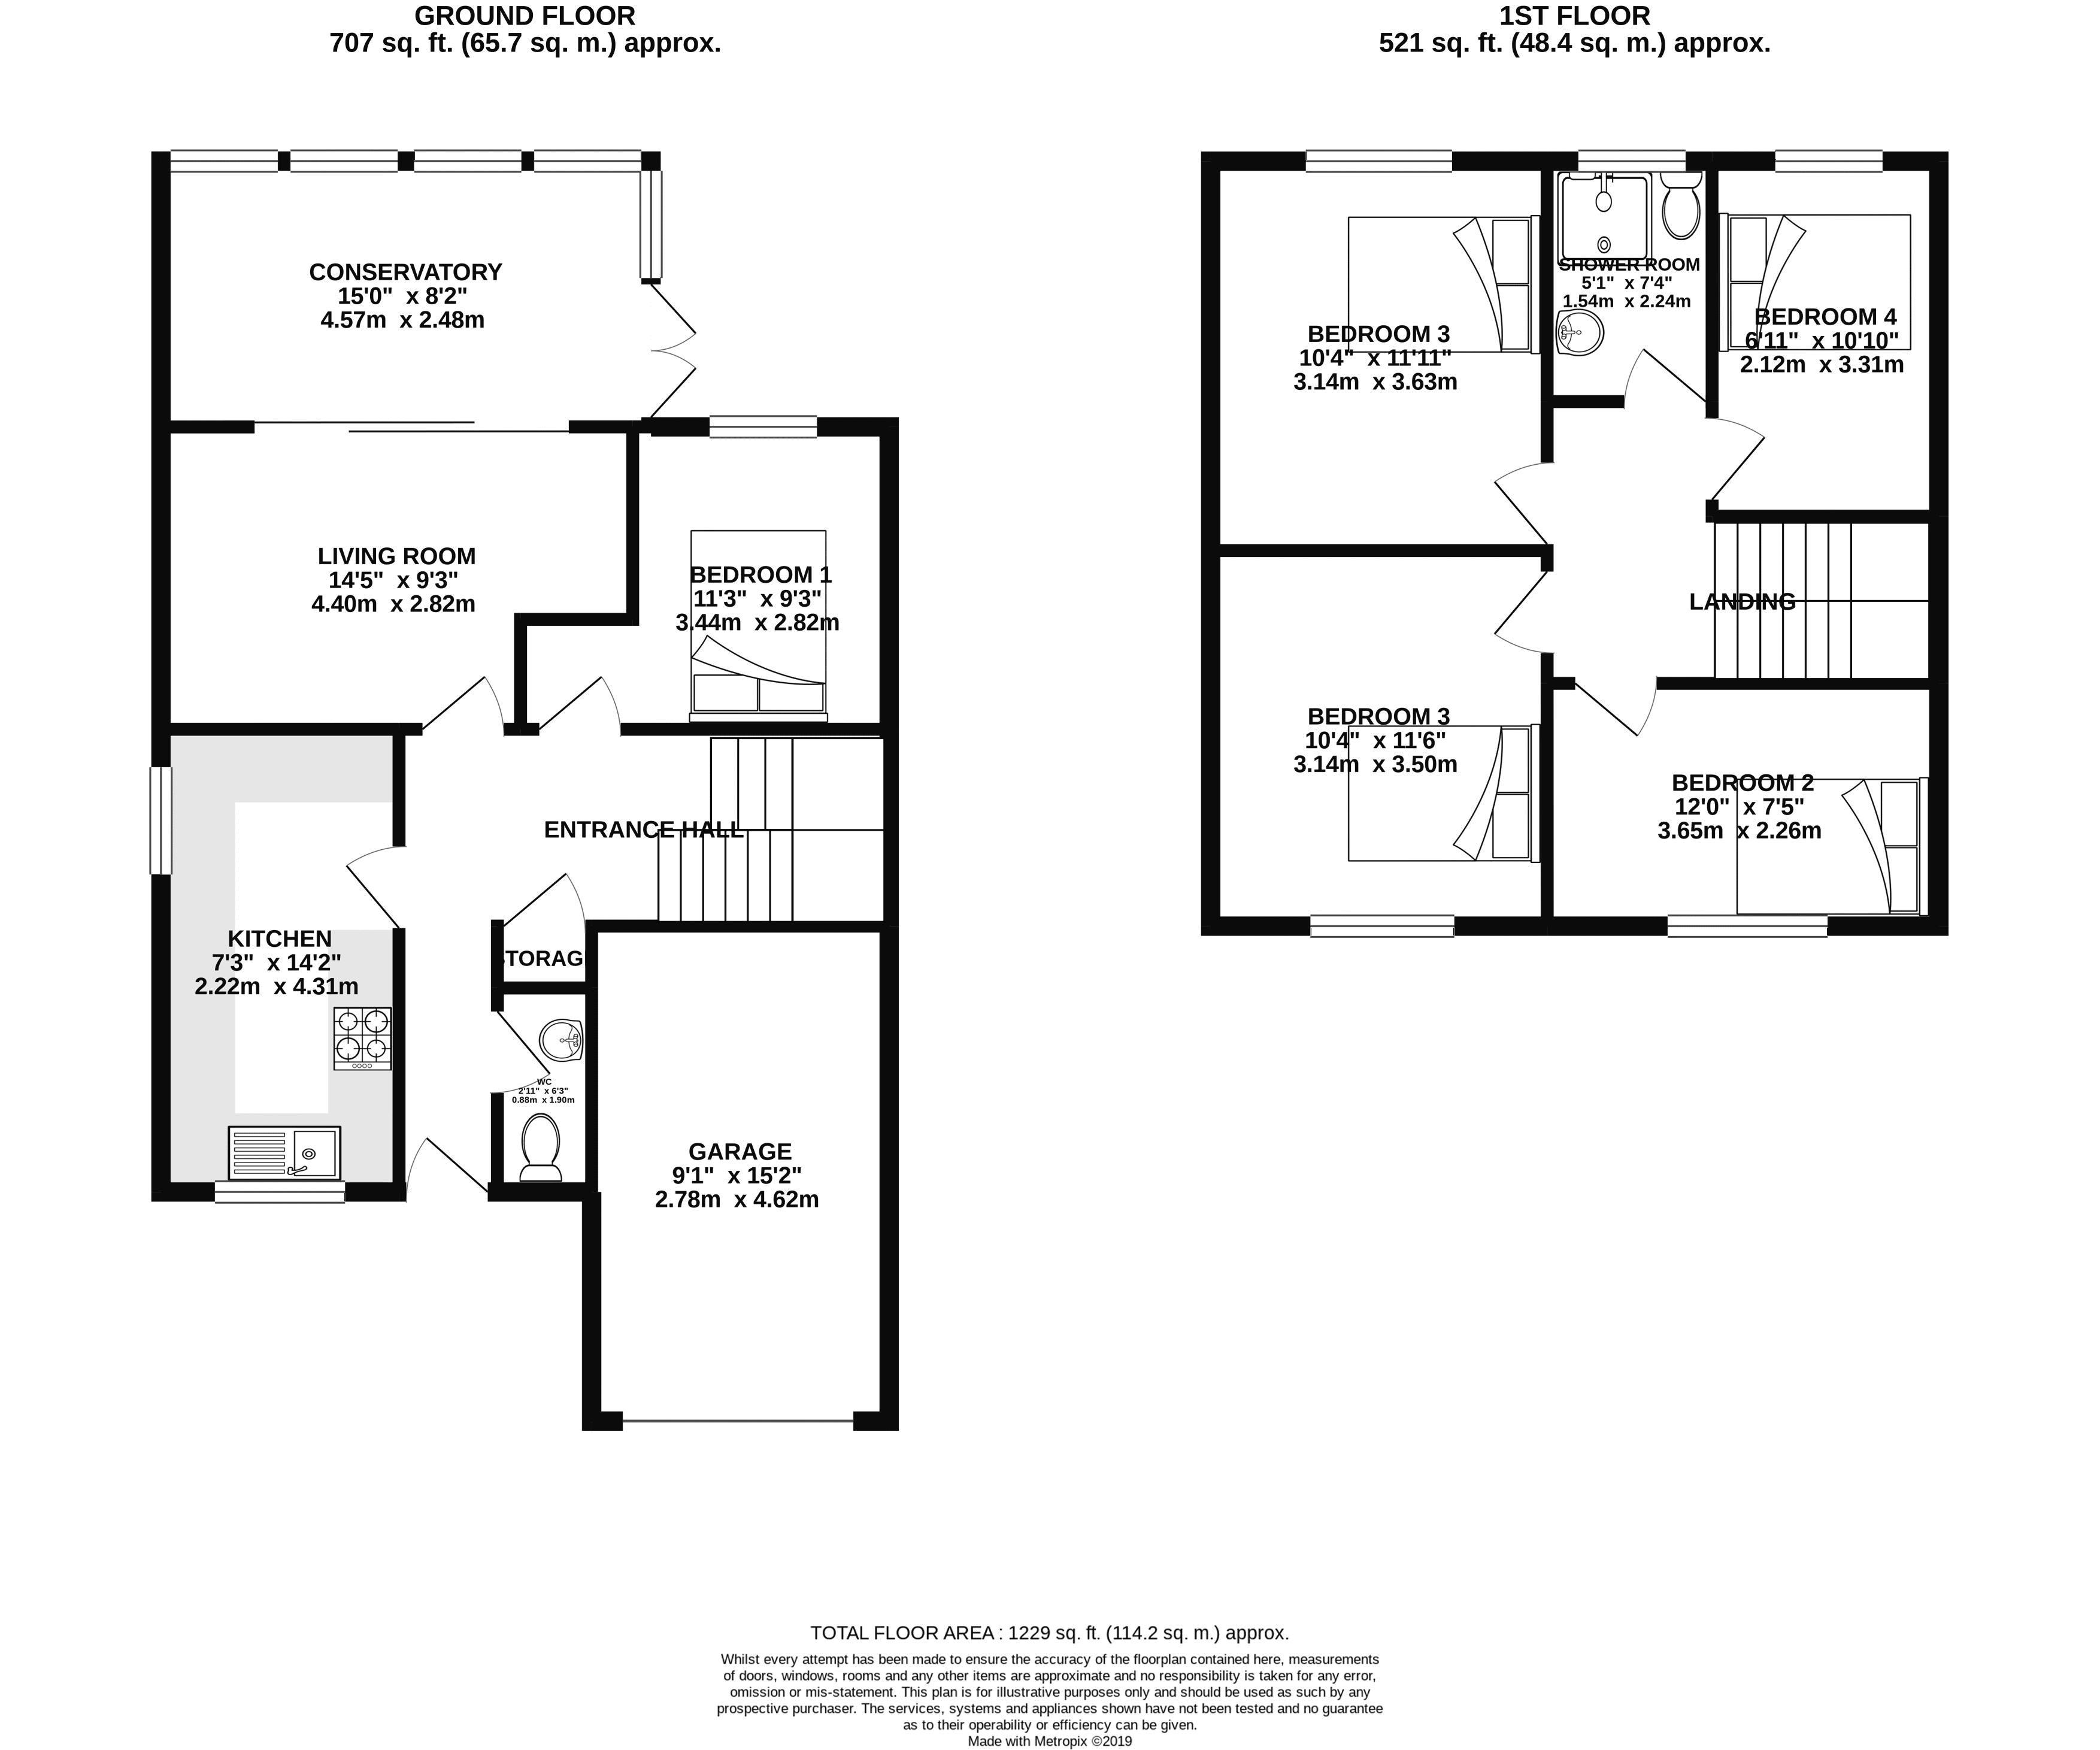 Floor plans for Canfield Close, Brighton property for sale in Coombe Road, Brighton by Coapt